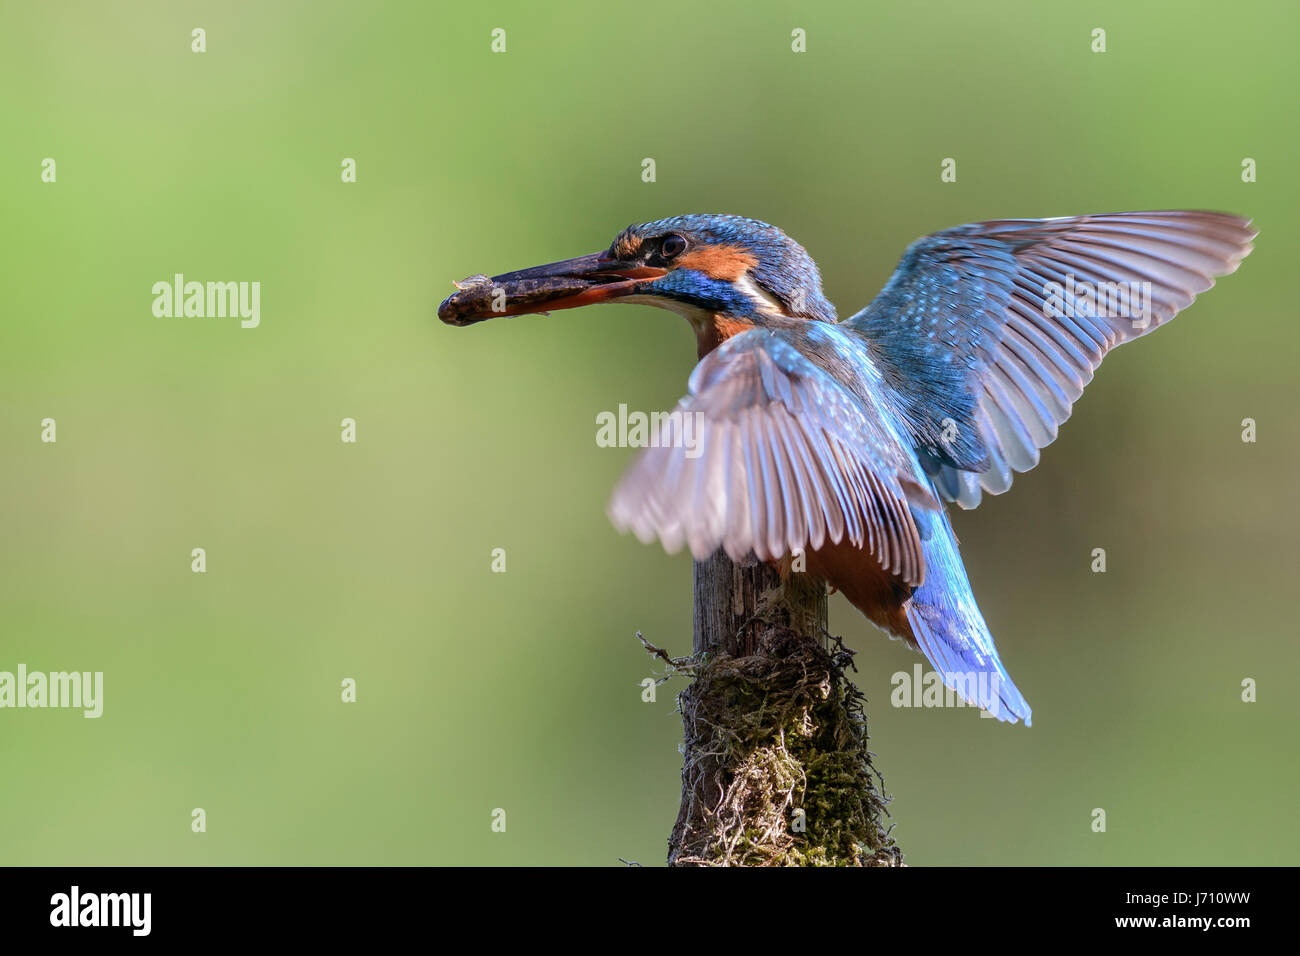 European kingfisher stock photos european kingfisher for Fish and wings